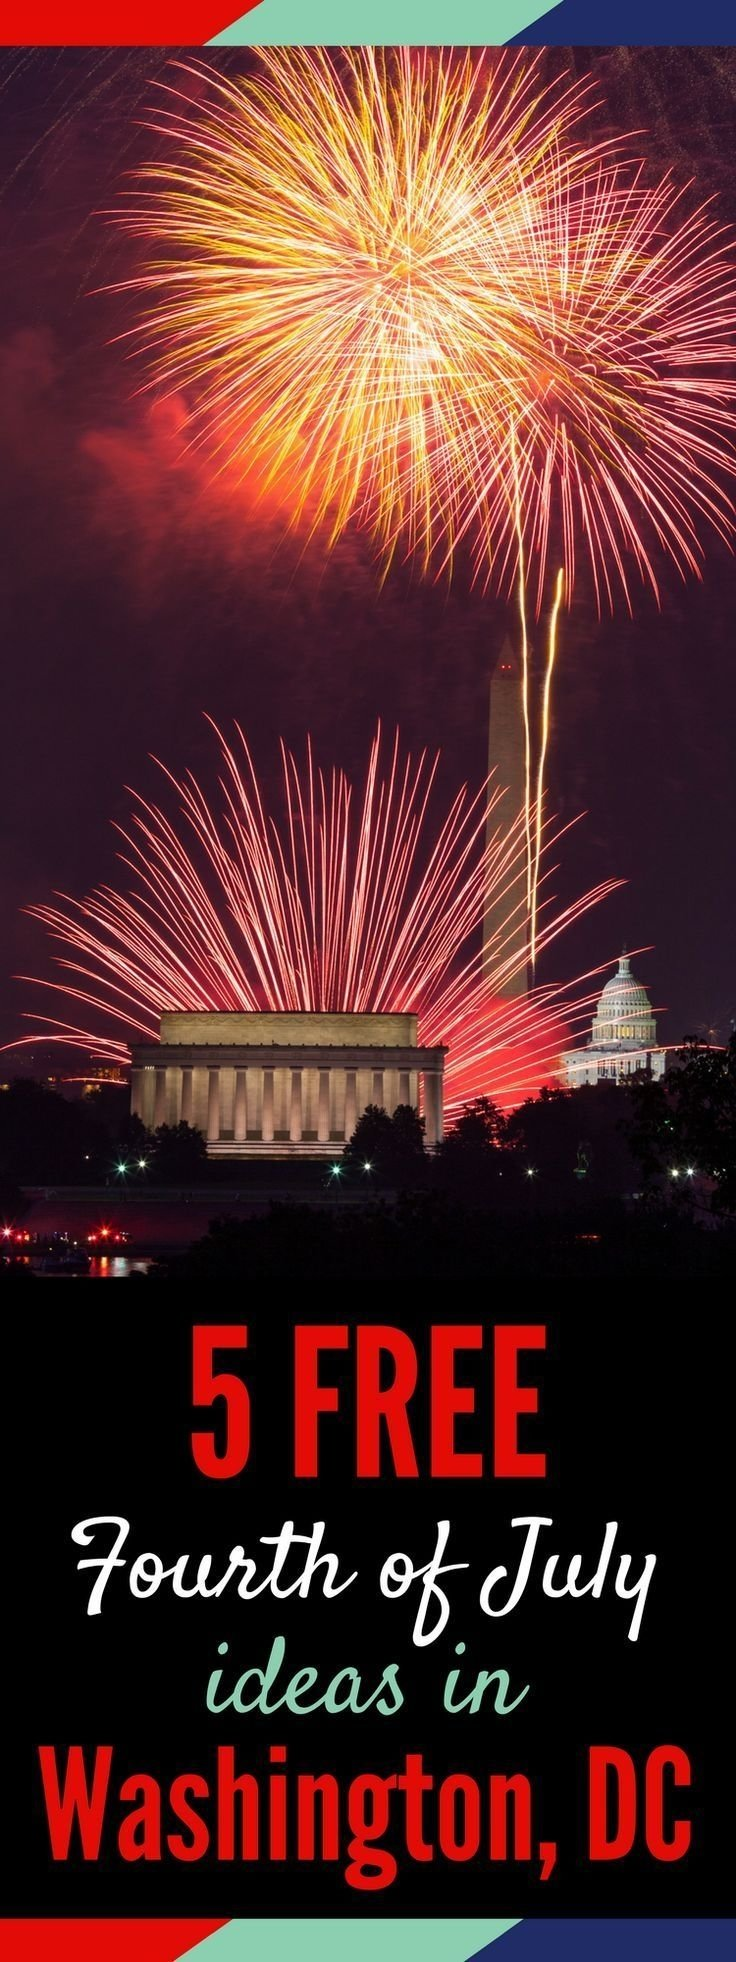 five free ways to spend fourth of july in washington, dc | free